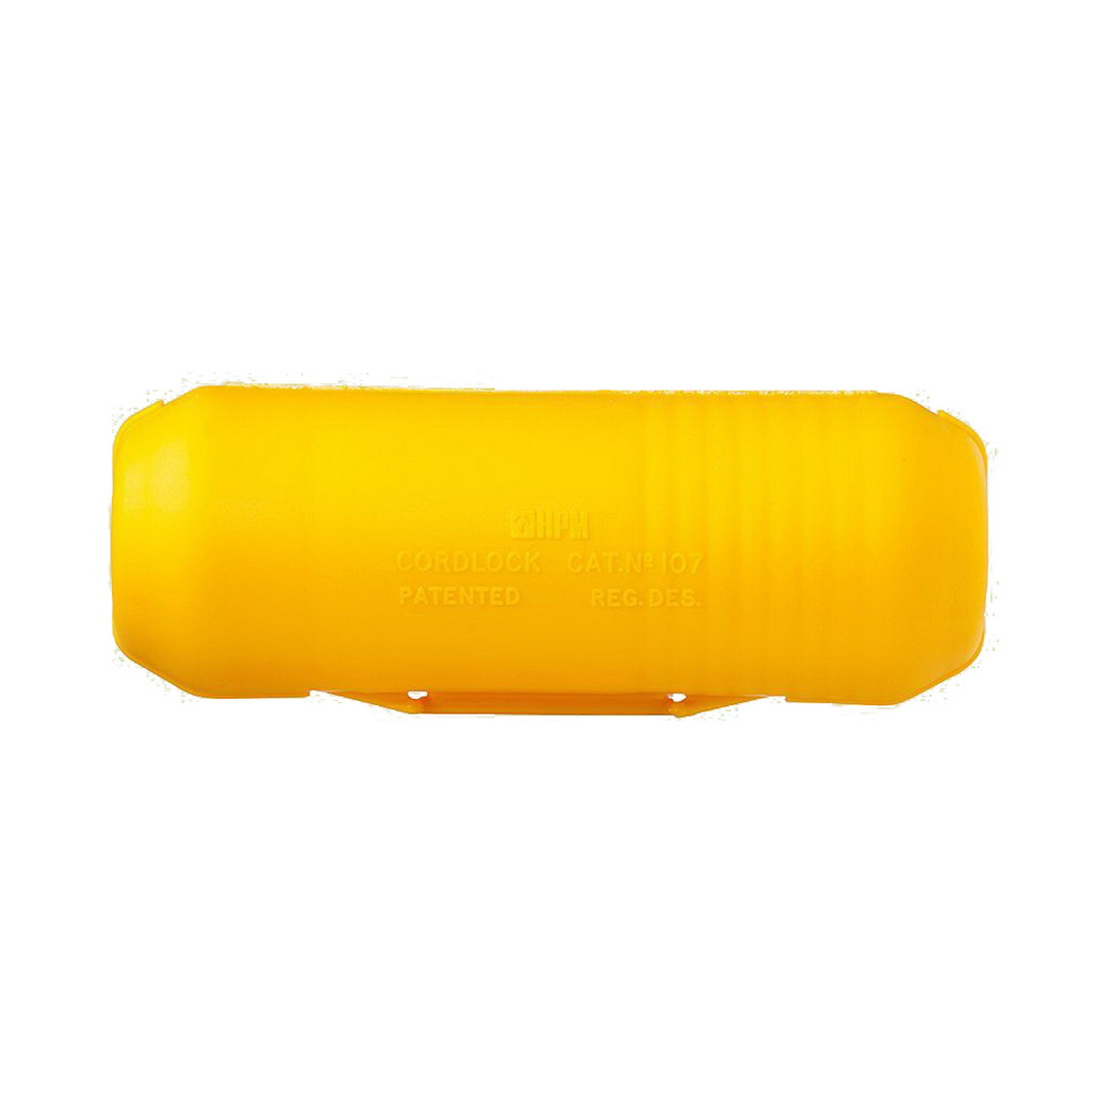 Extension Lead Safety Cord Lock Yellow